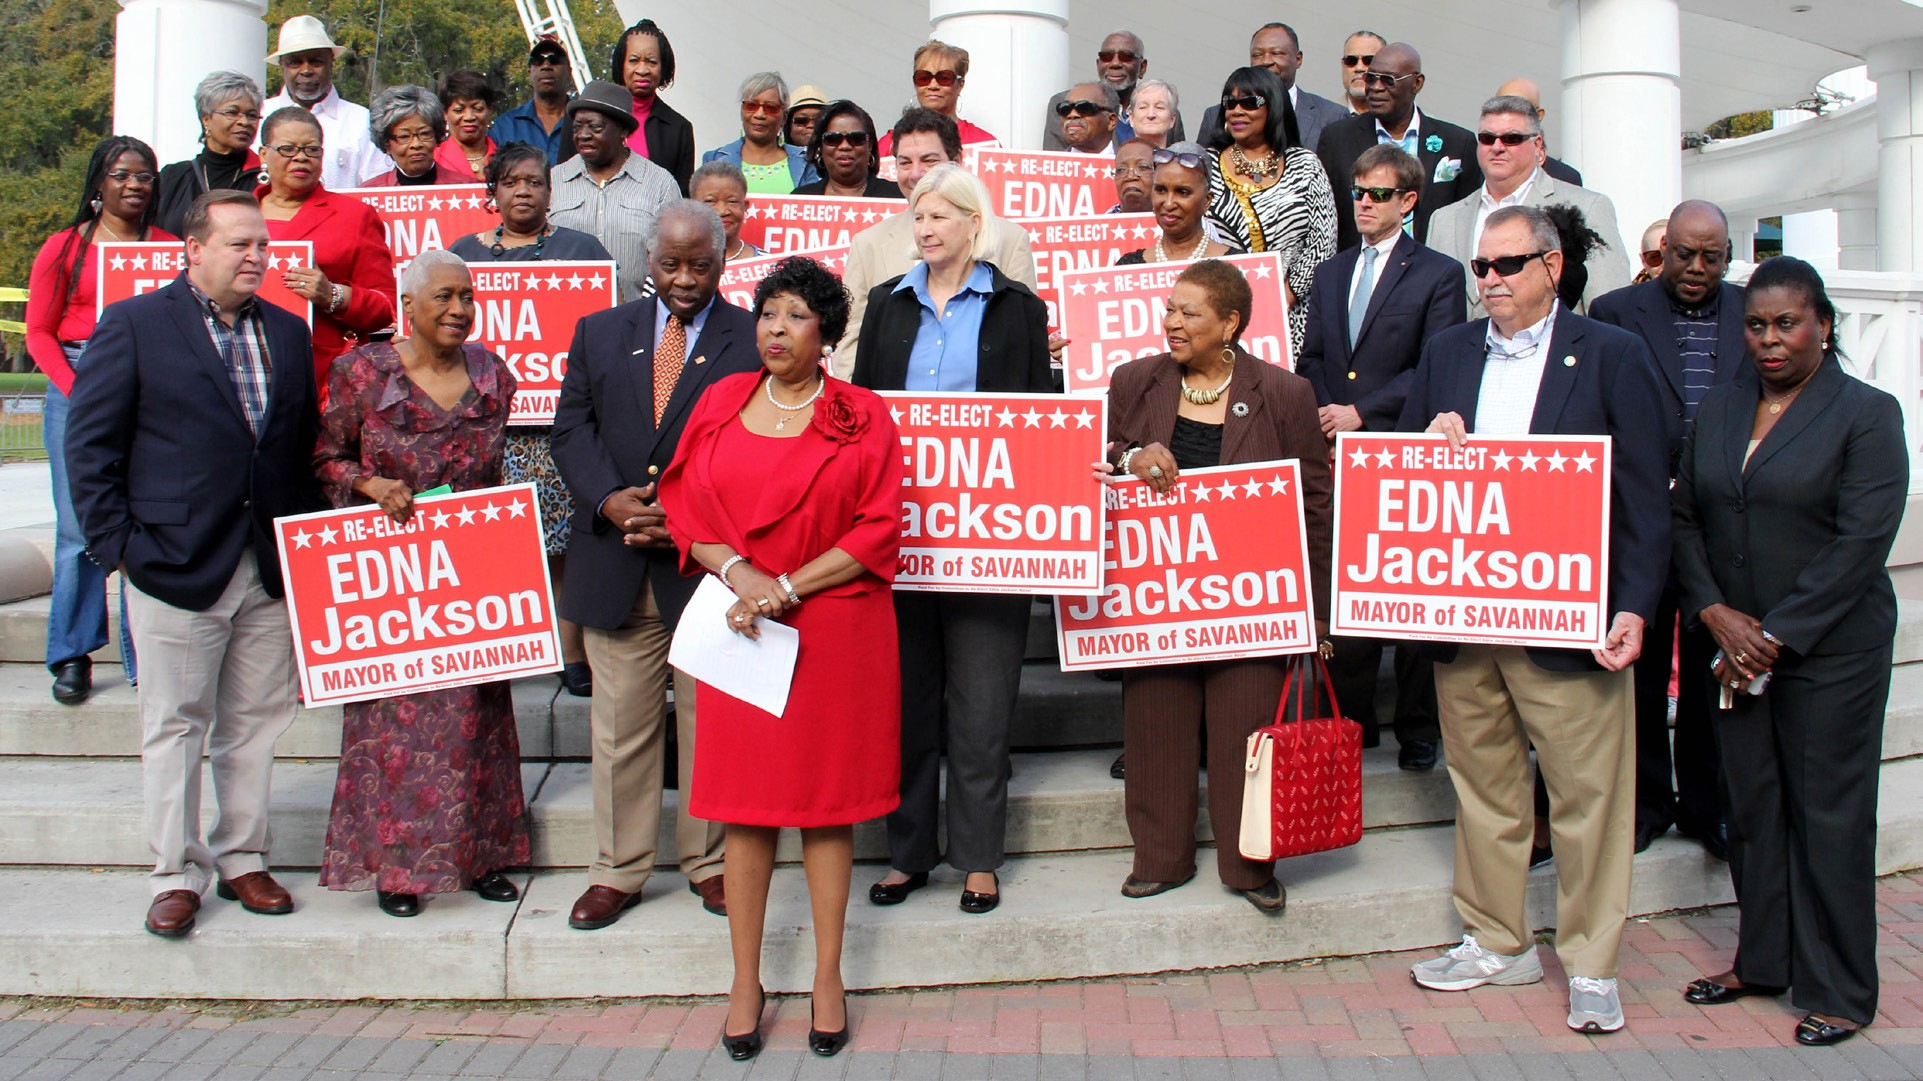 Mayor Edna B. Jackson surrounded by supporters as she announces her bid for re-election.